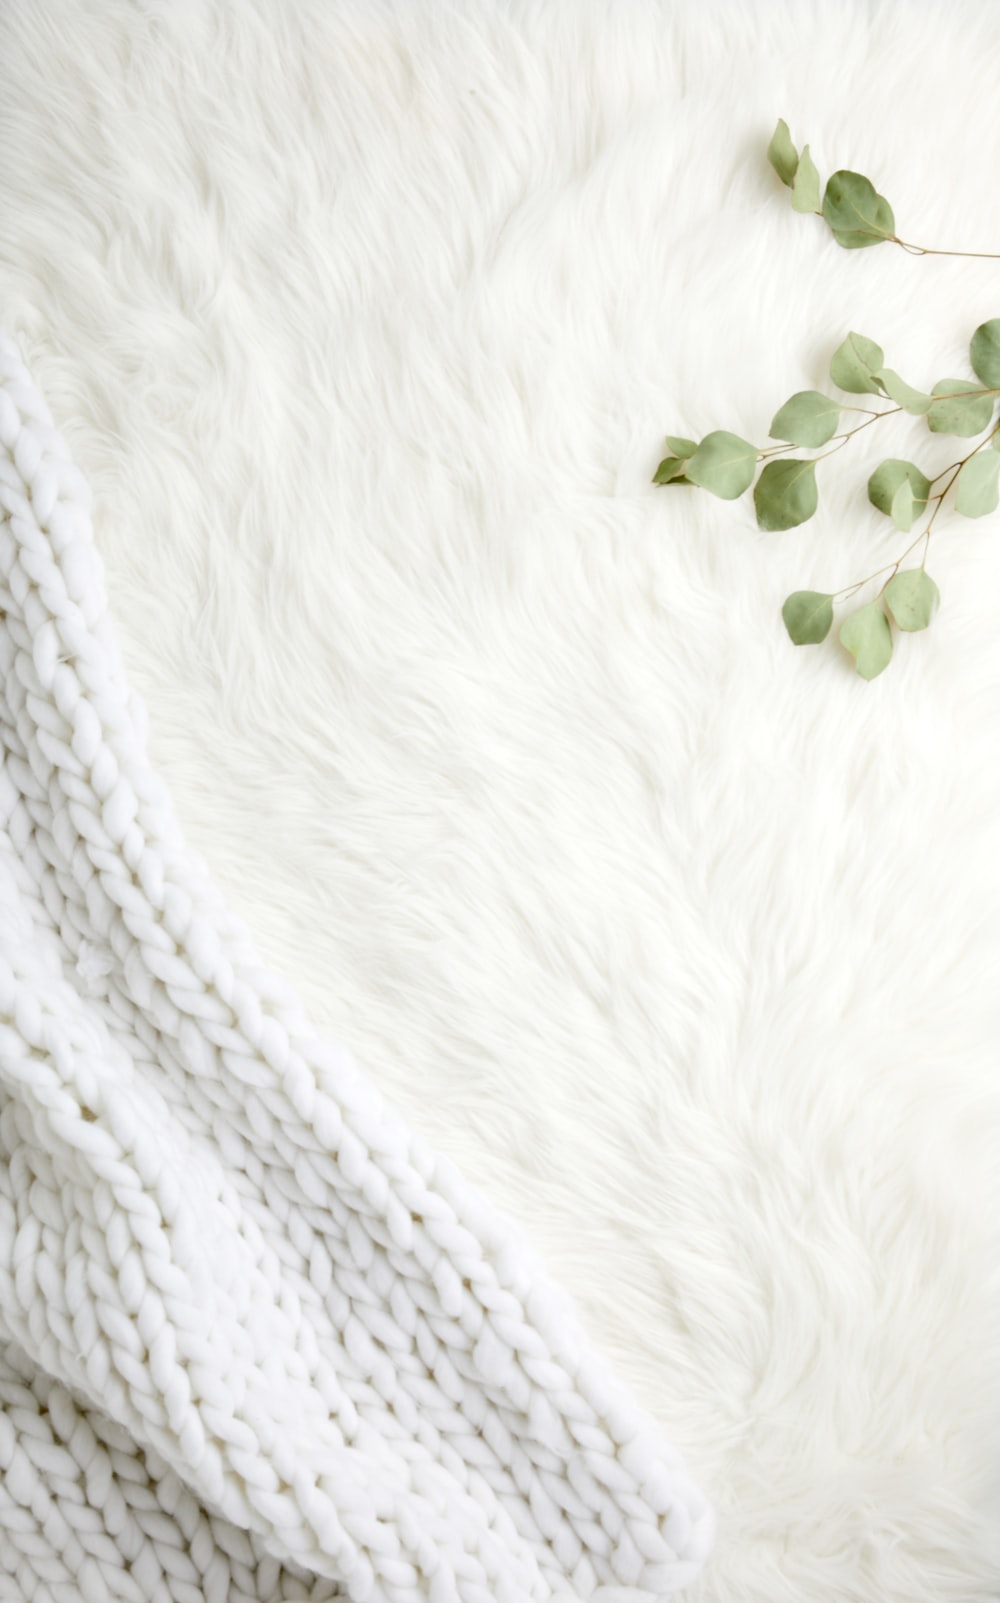 green leaves on white textile